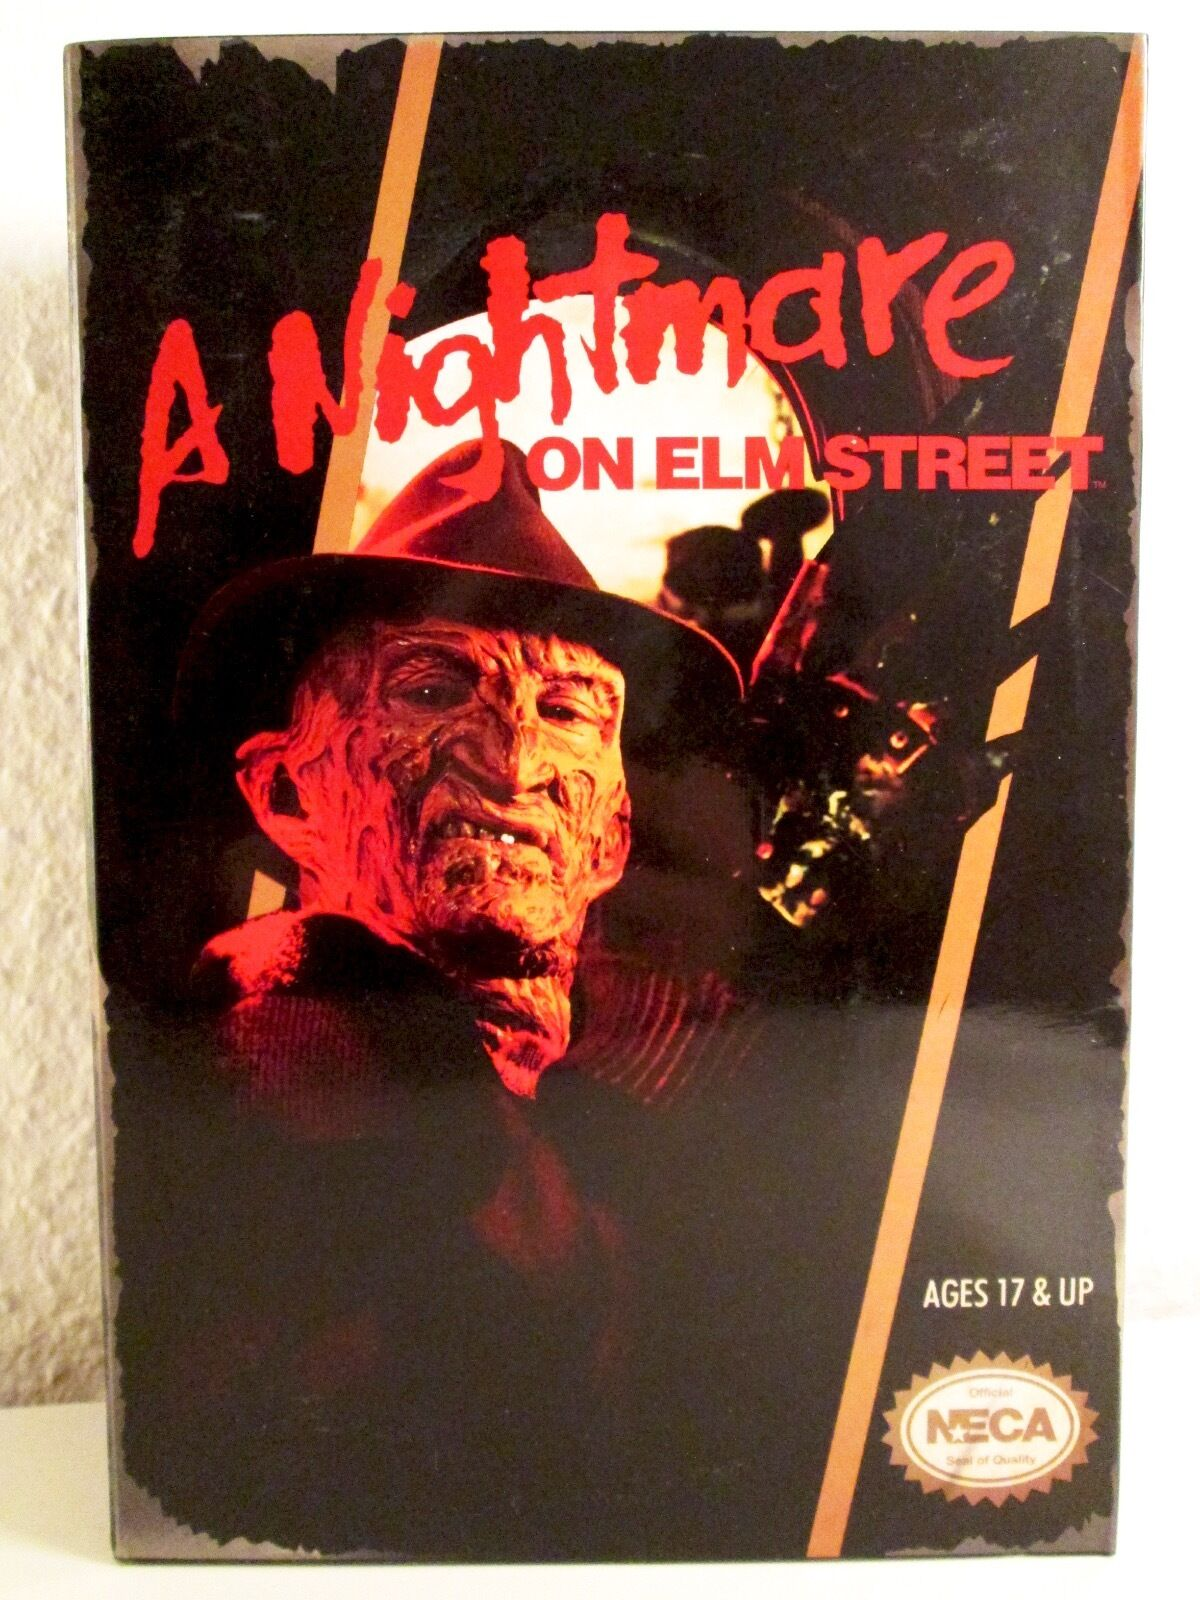 NECA A NIGHTMARE ON ELMSTREET - Video Game Appearance NIB FROTdy in DISPLAY BOX